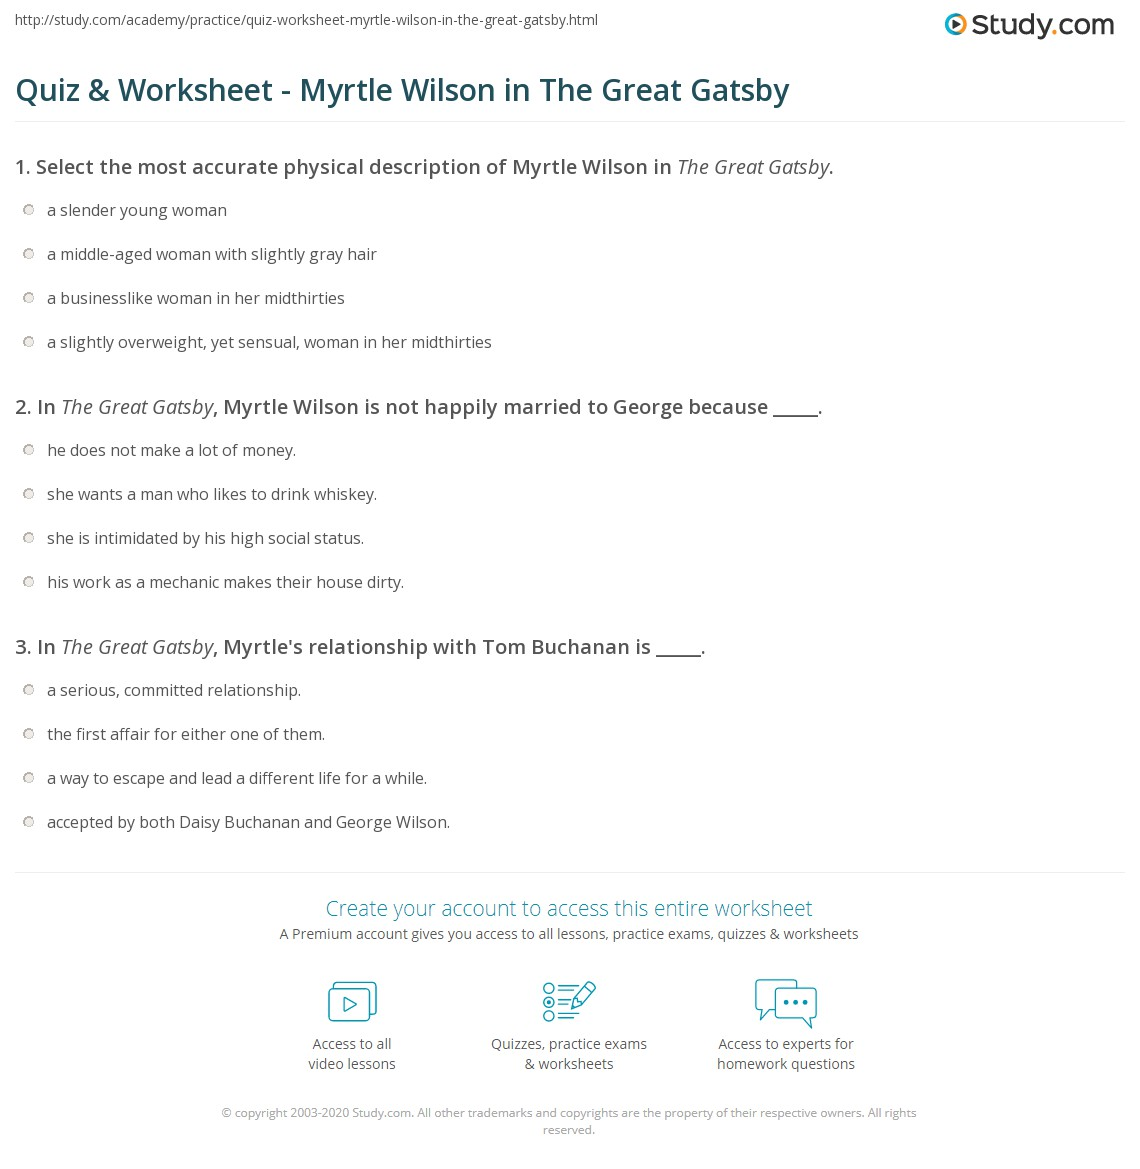 the great gatsby character relationships